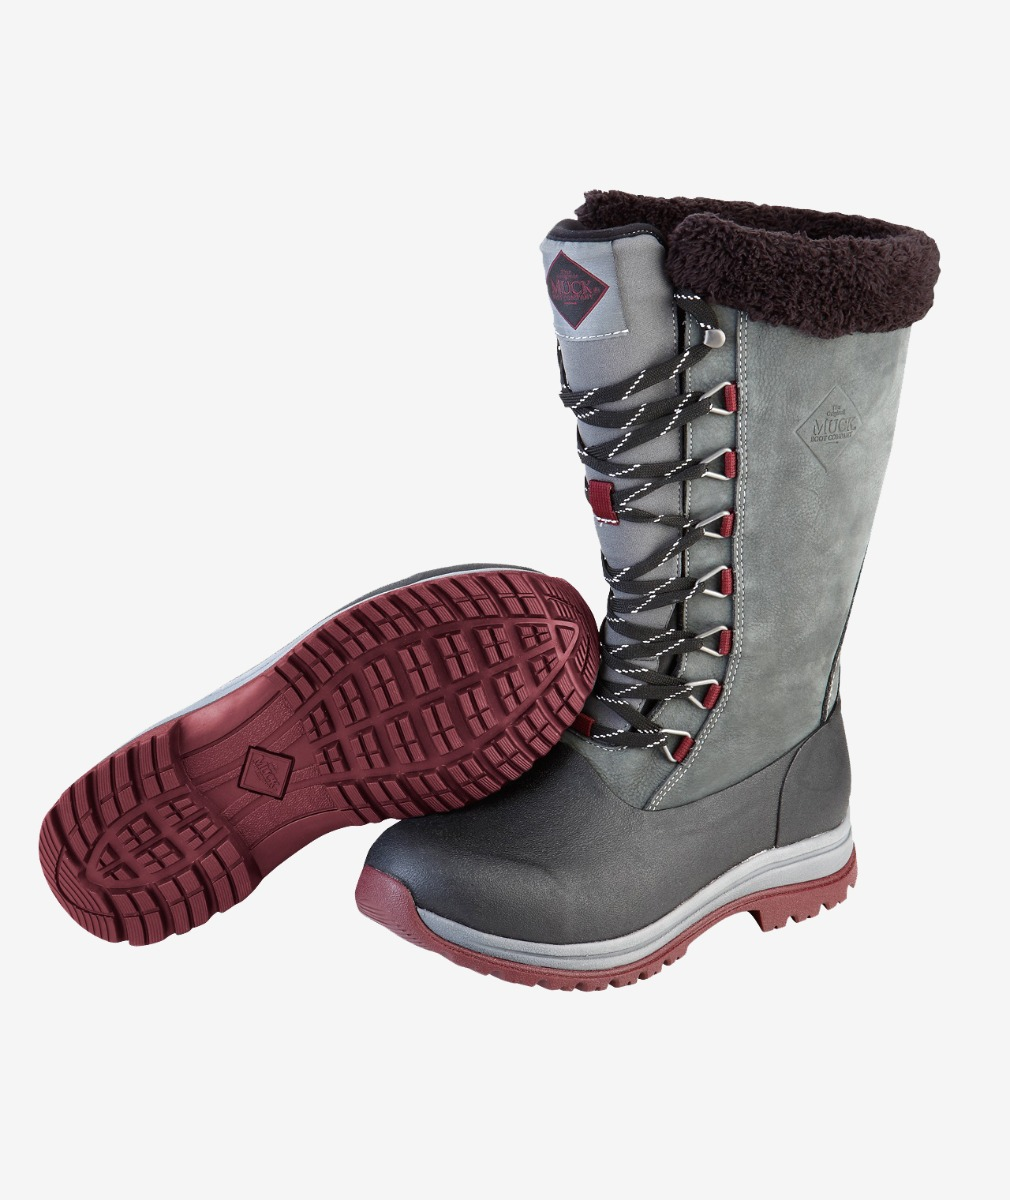 Muck Boot Women's Arctic Apres Lace Tall Gumboot